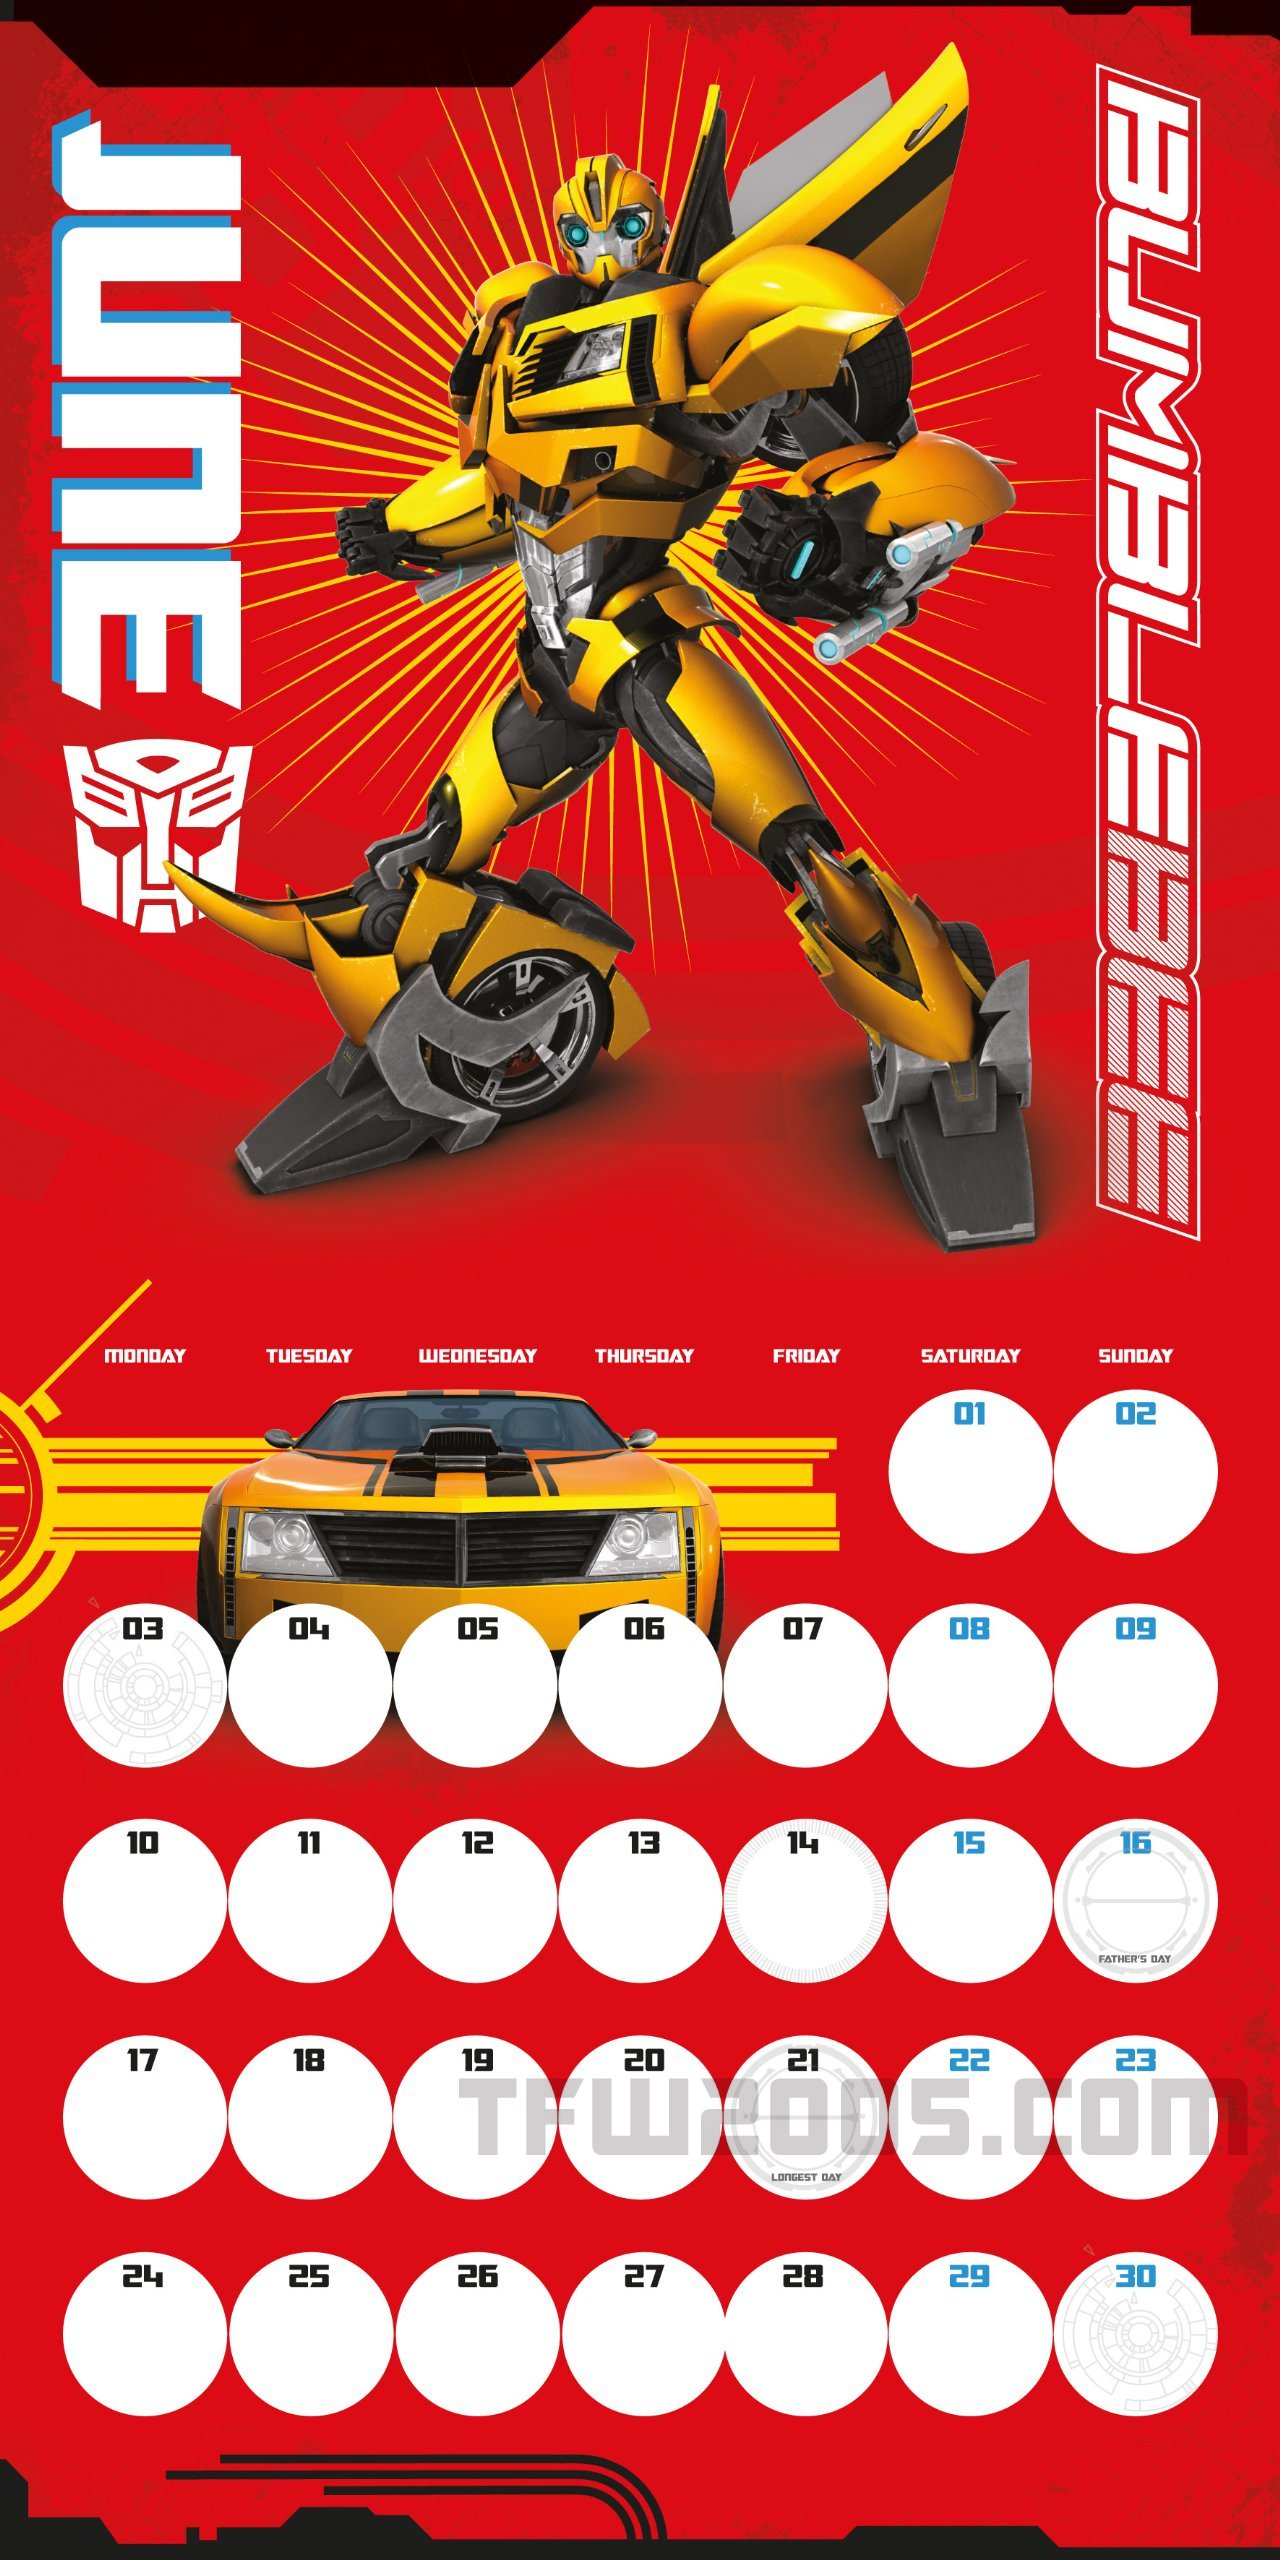 Transformers-Prime-2013-Calendar-Season-2-Comic-Book-TFW2005-4